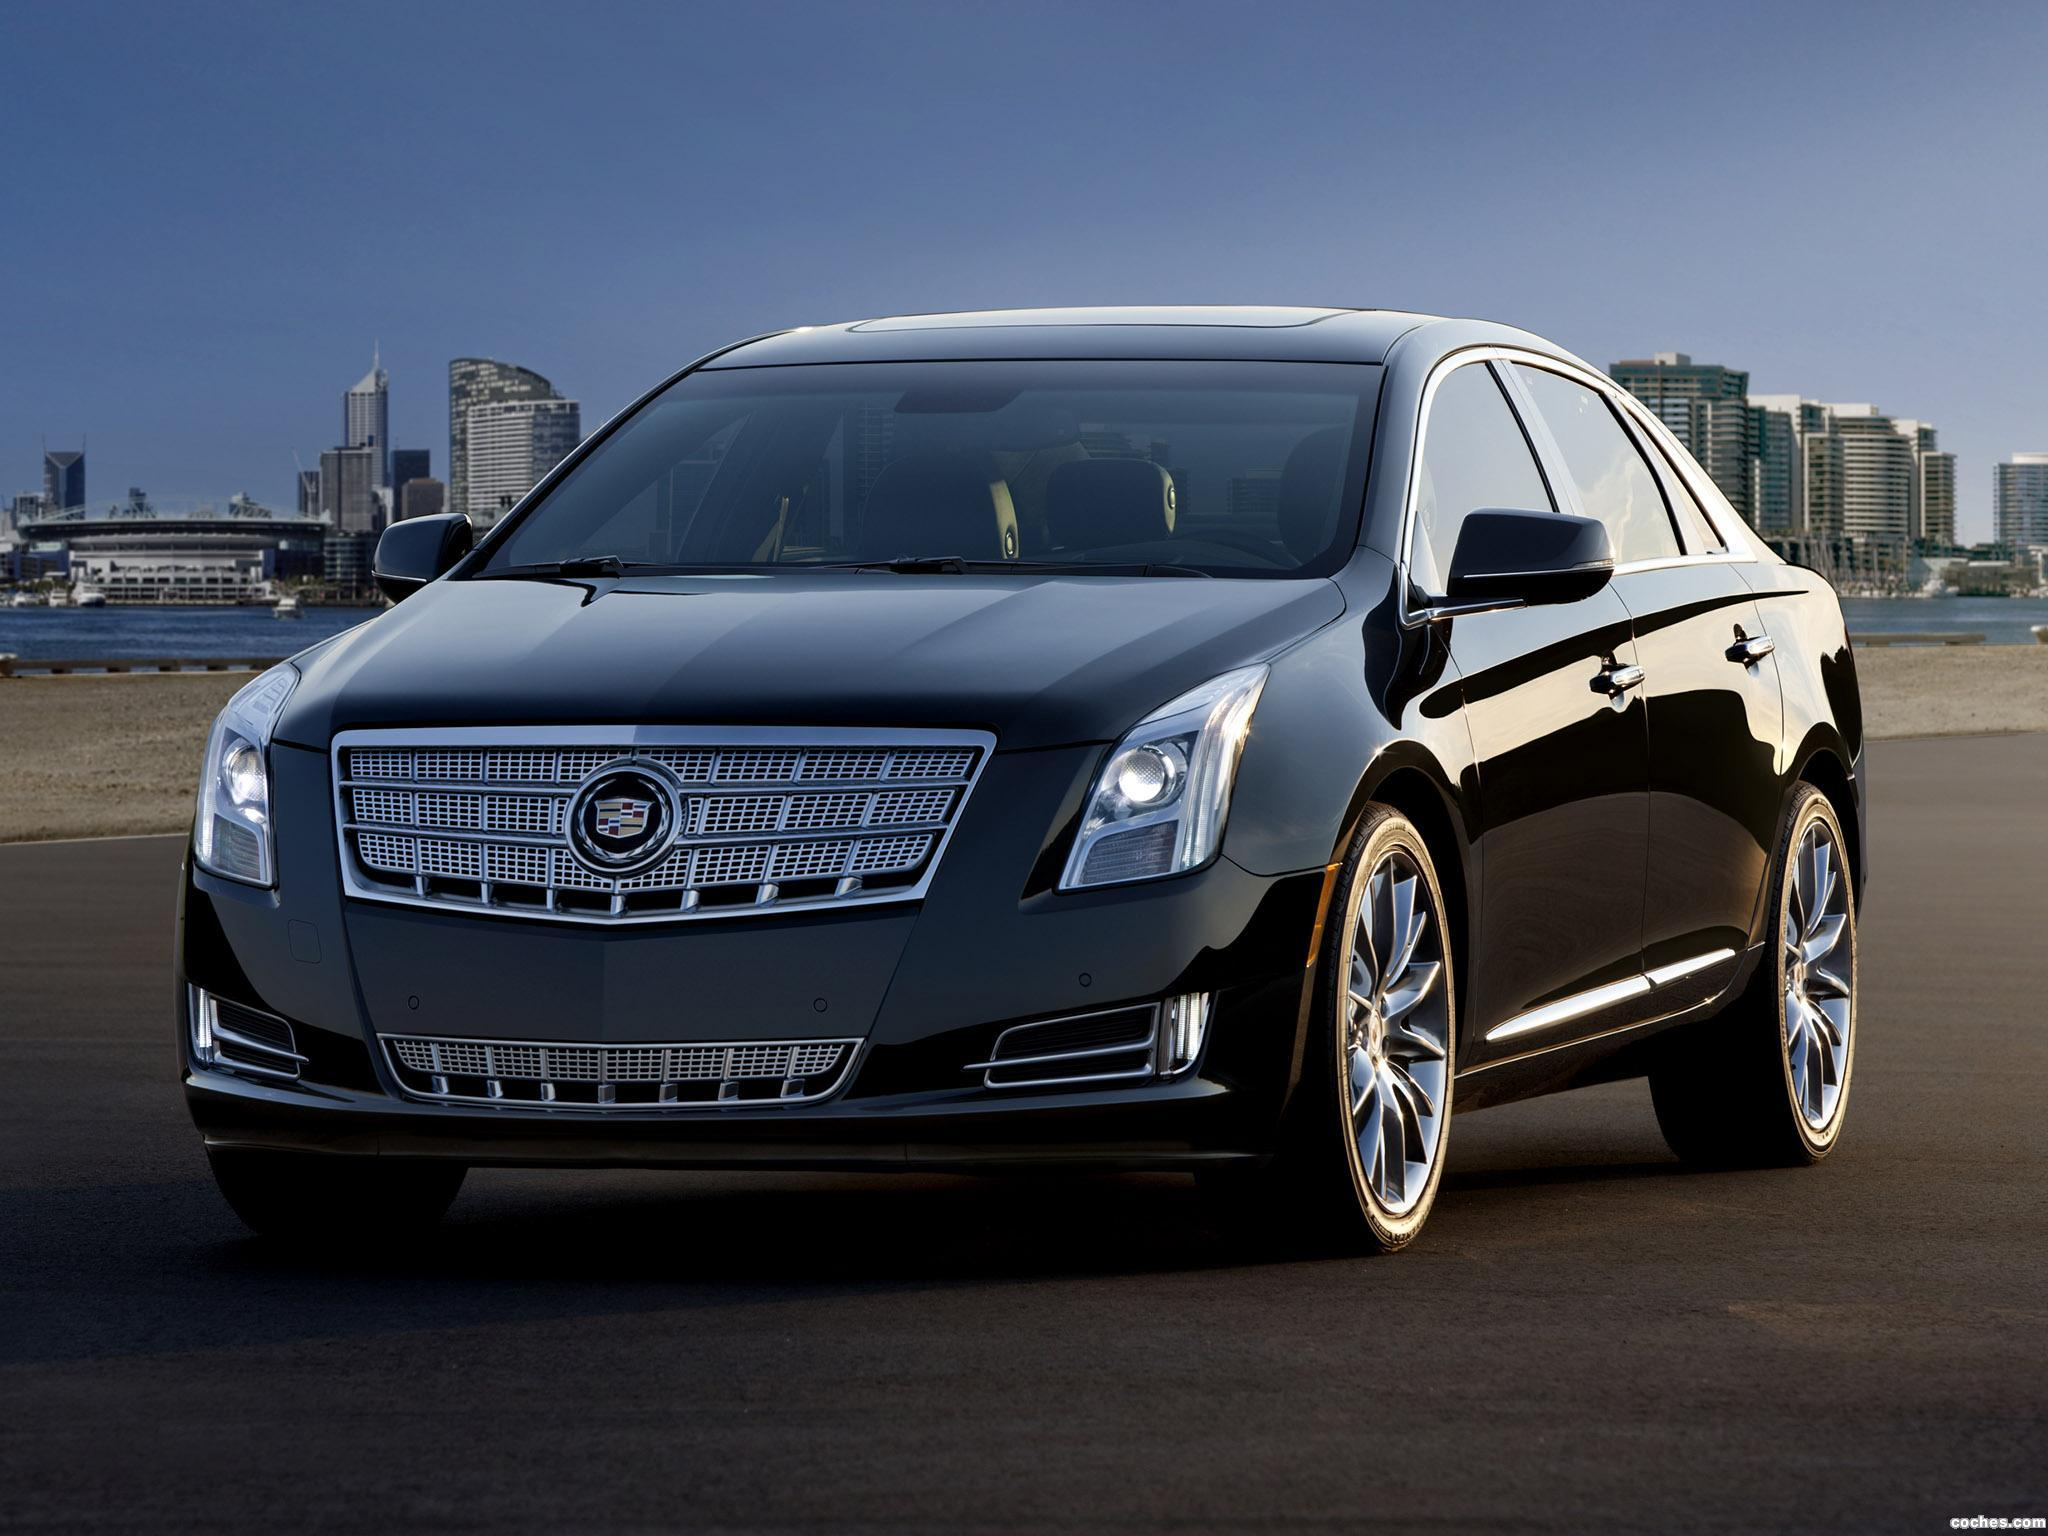 Foto 0 de Cadillac XTS Luxury Sedan 2012